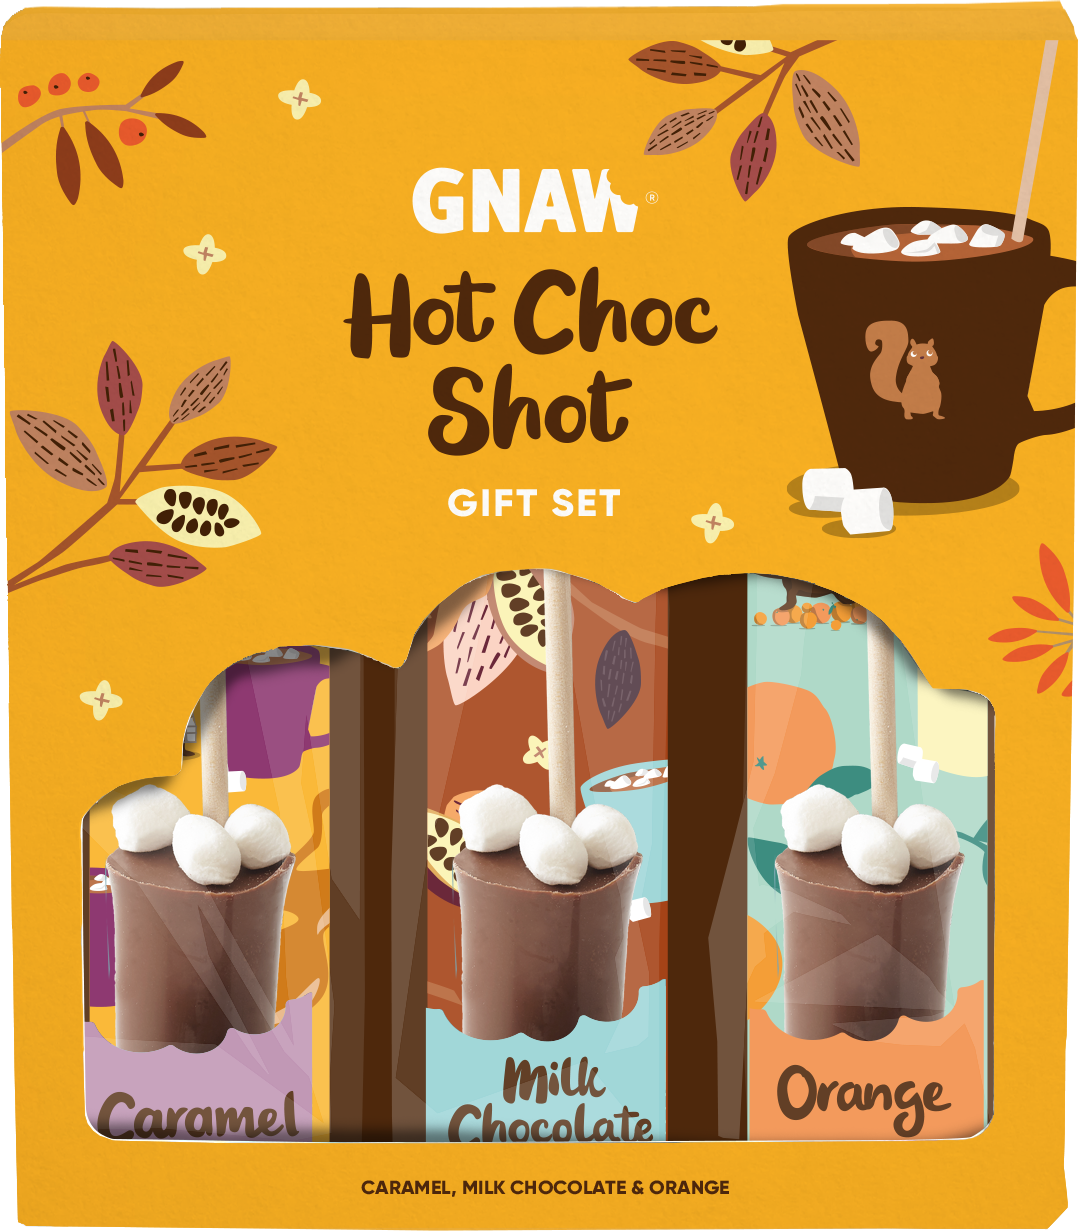 Hot Choc Shot - mixed giftset